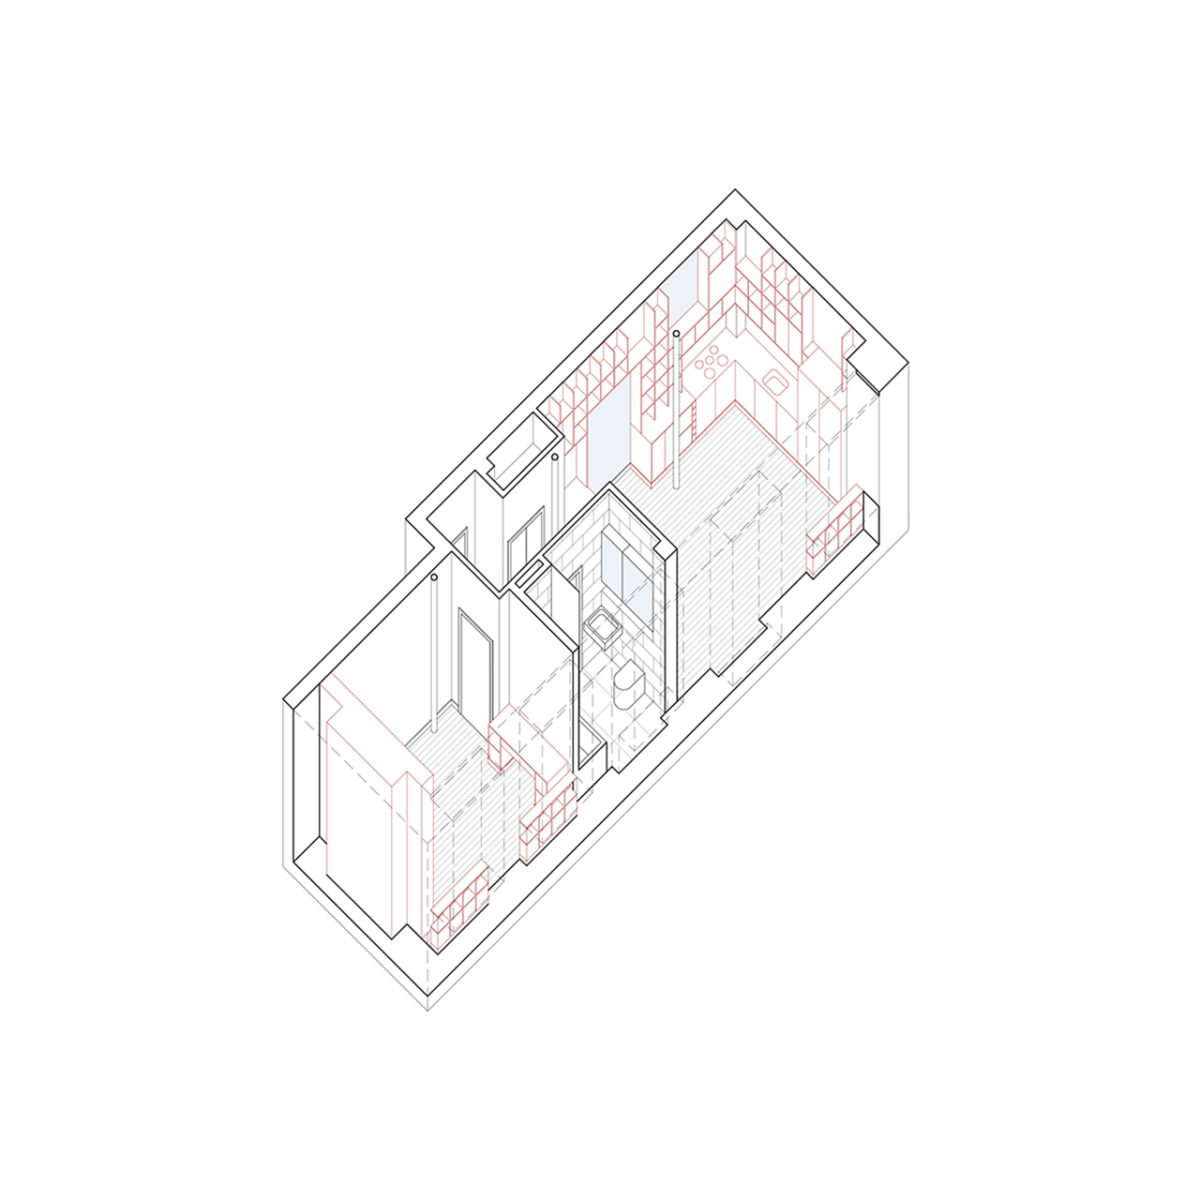 Private residence in Shoreditch axonometric view